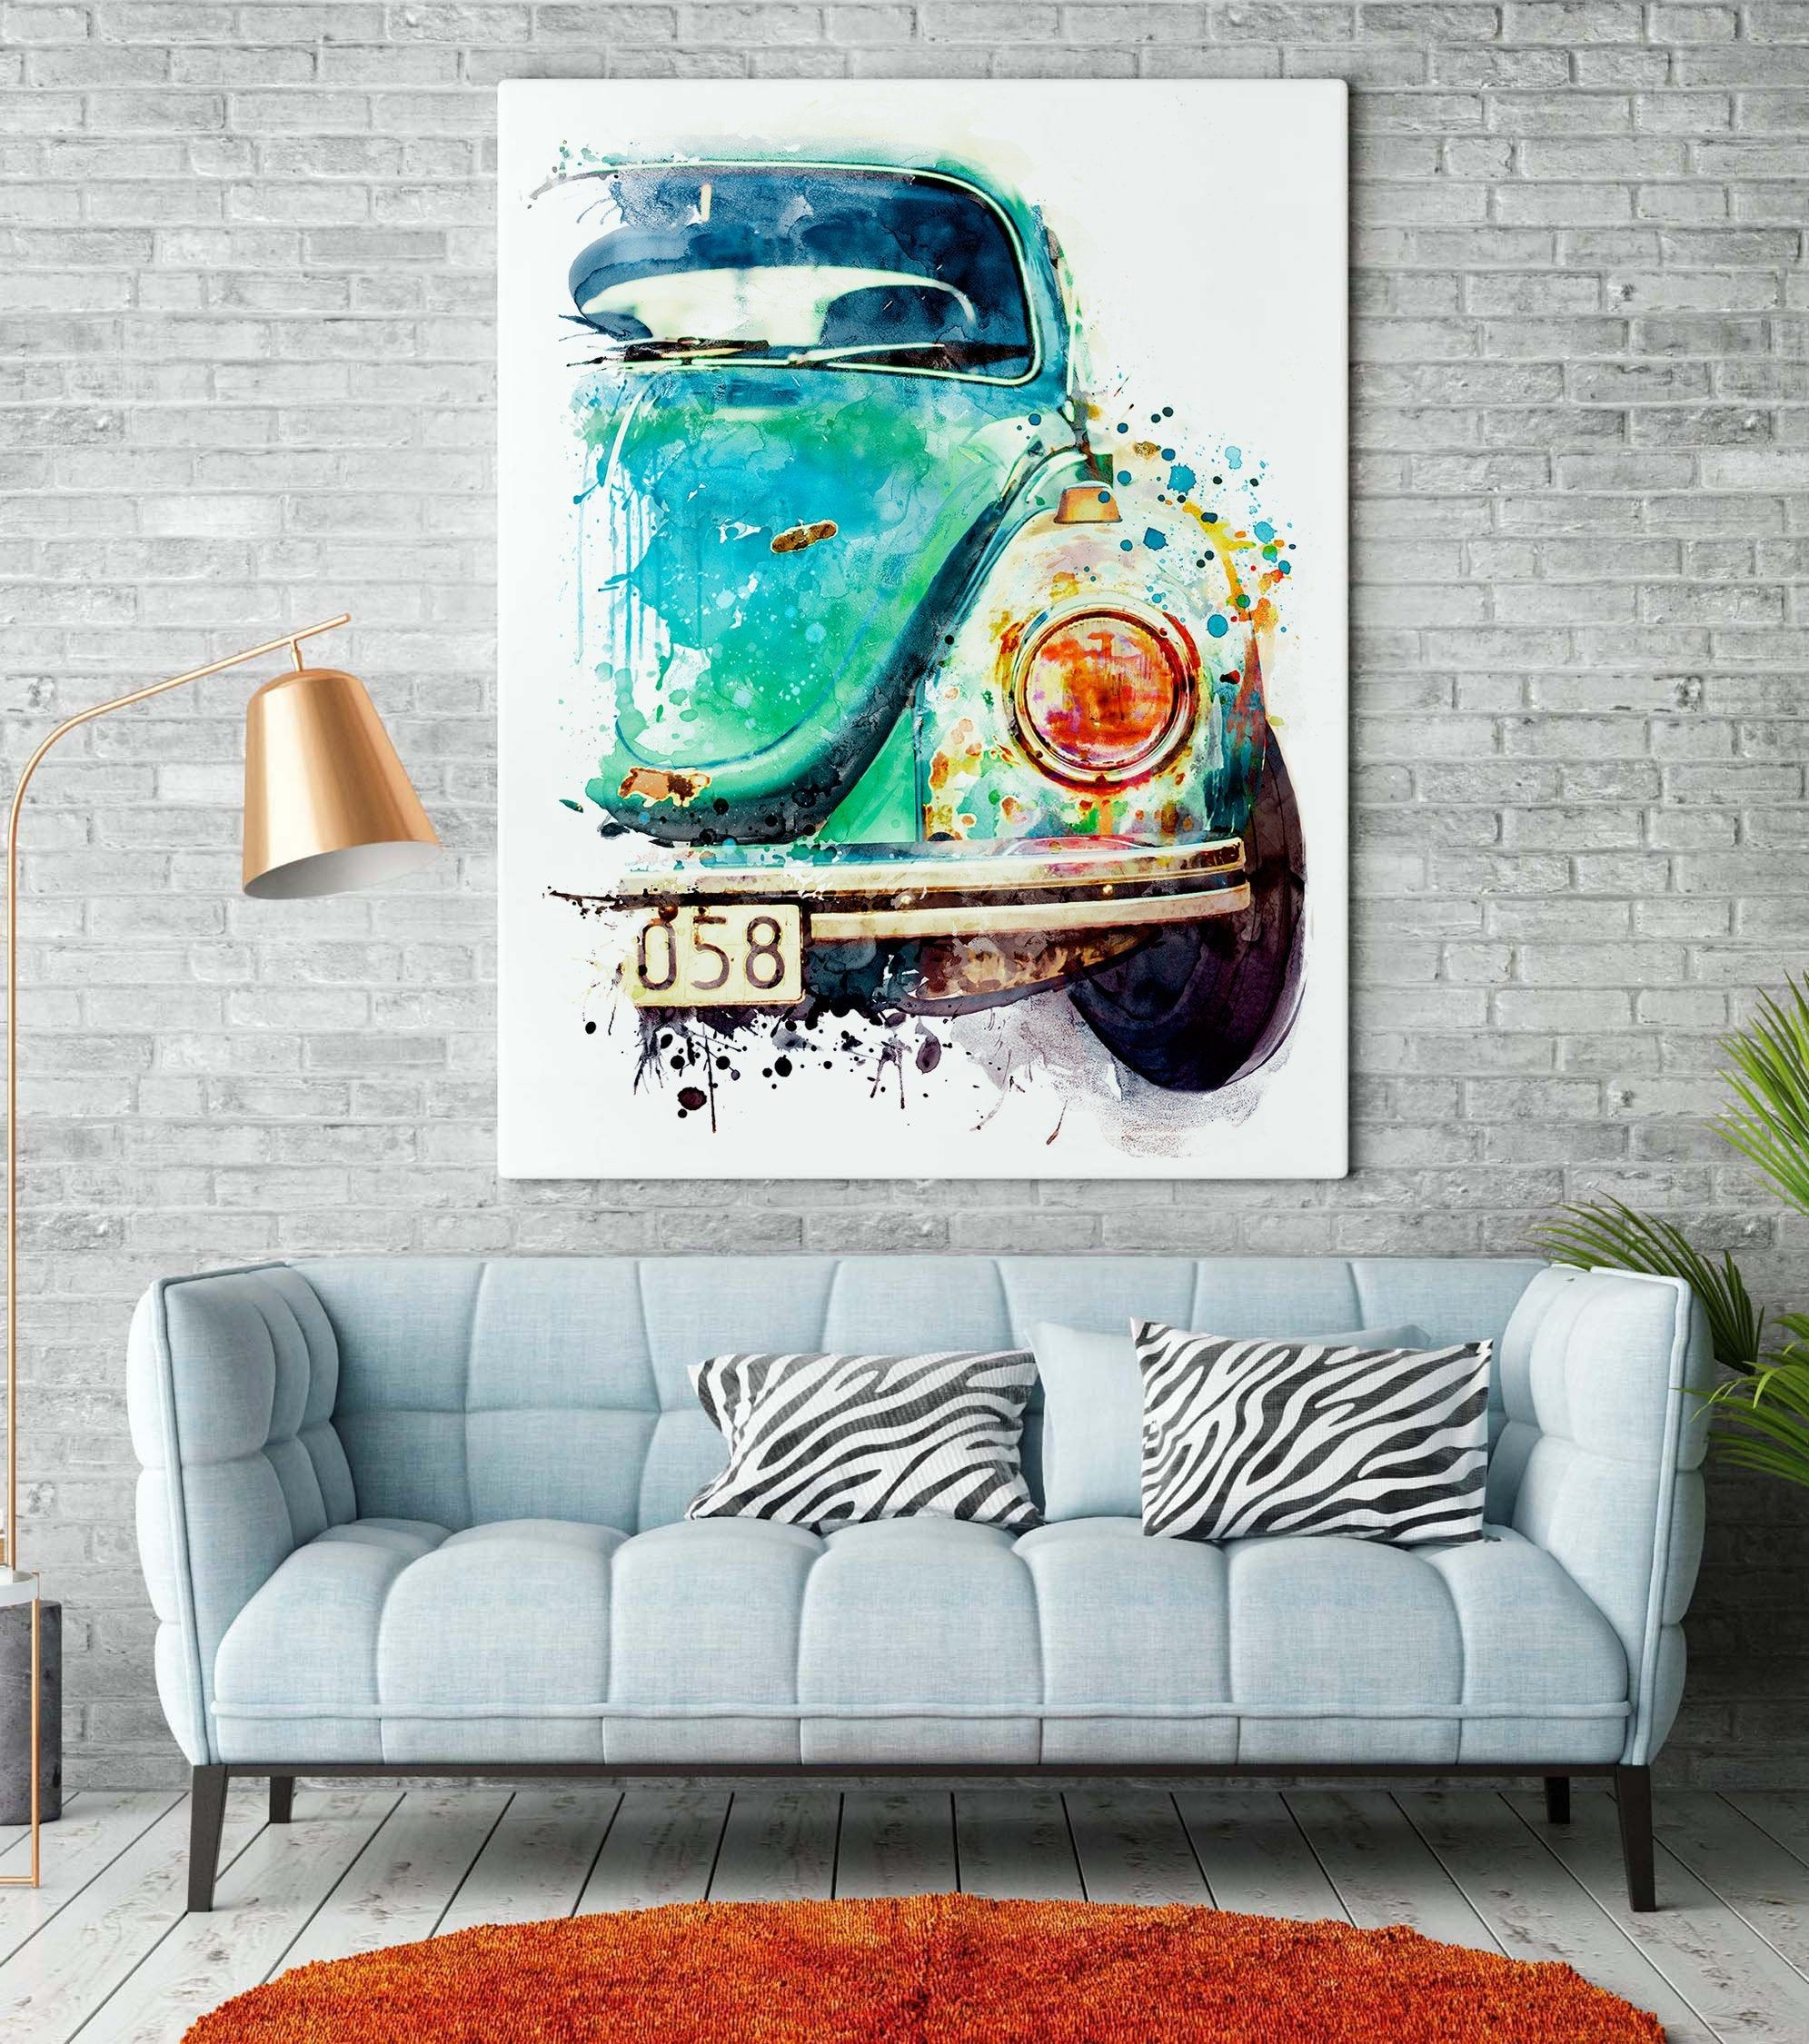 German Vintage Car, Watercolor Painting, Automobile poster, Affordable Car Decor, Blue, Turquoise, Classic Car Art, Gift for Car Lovers